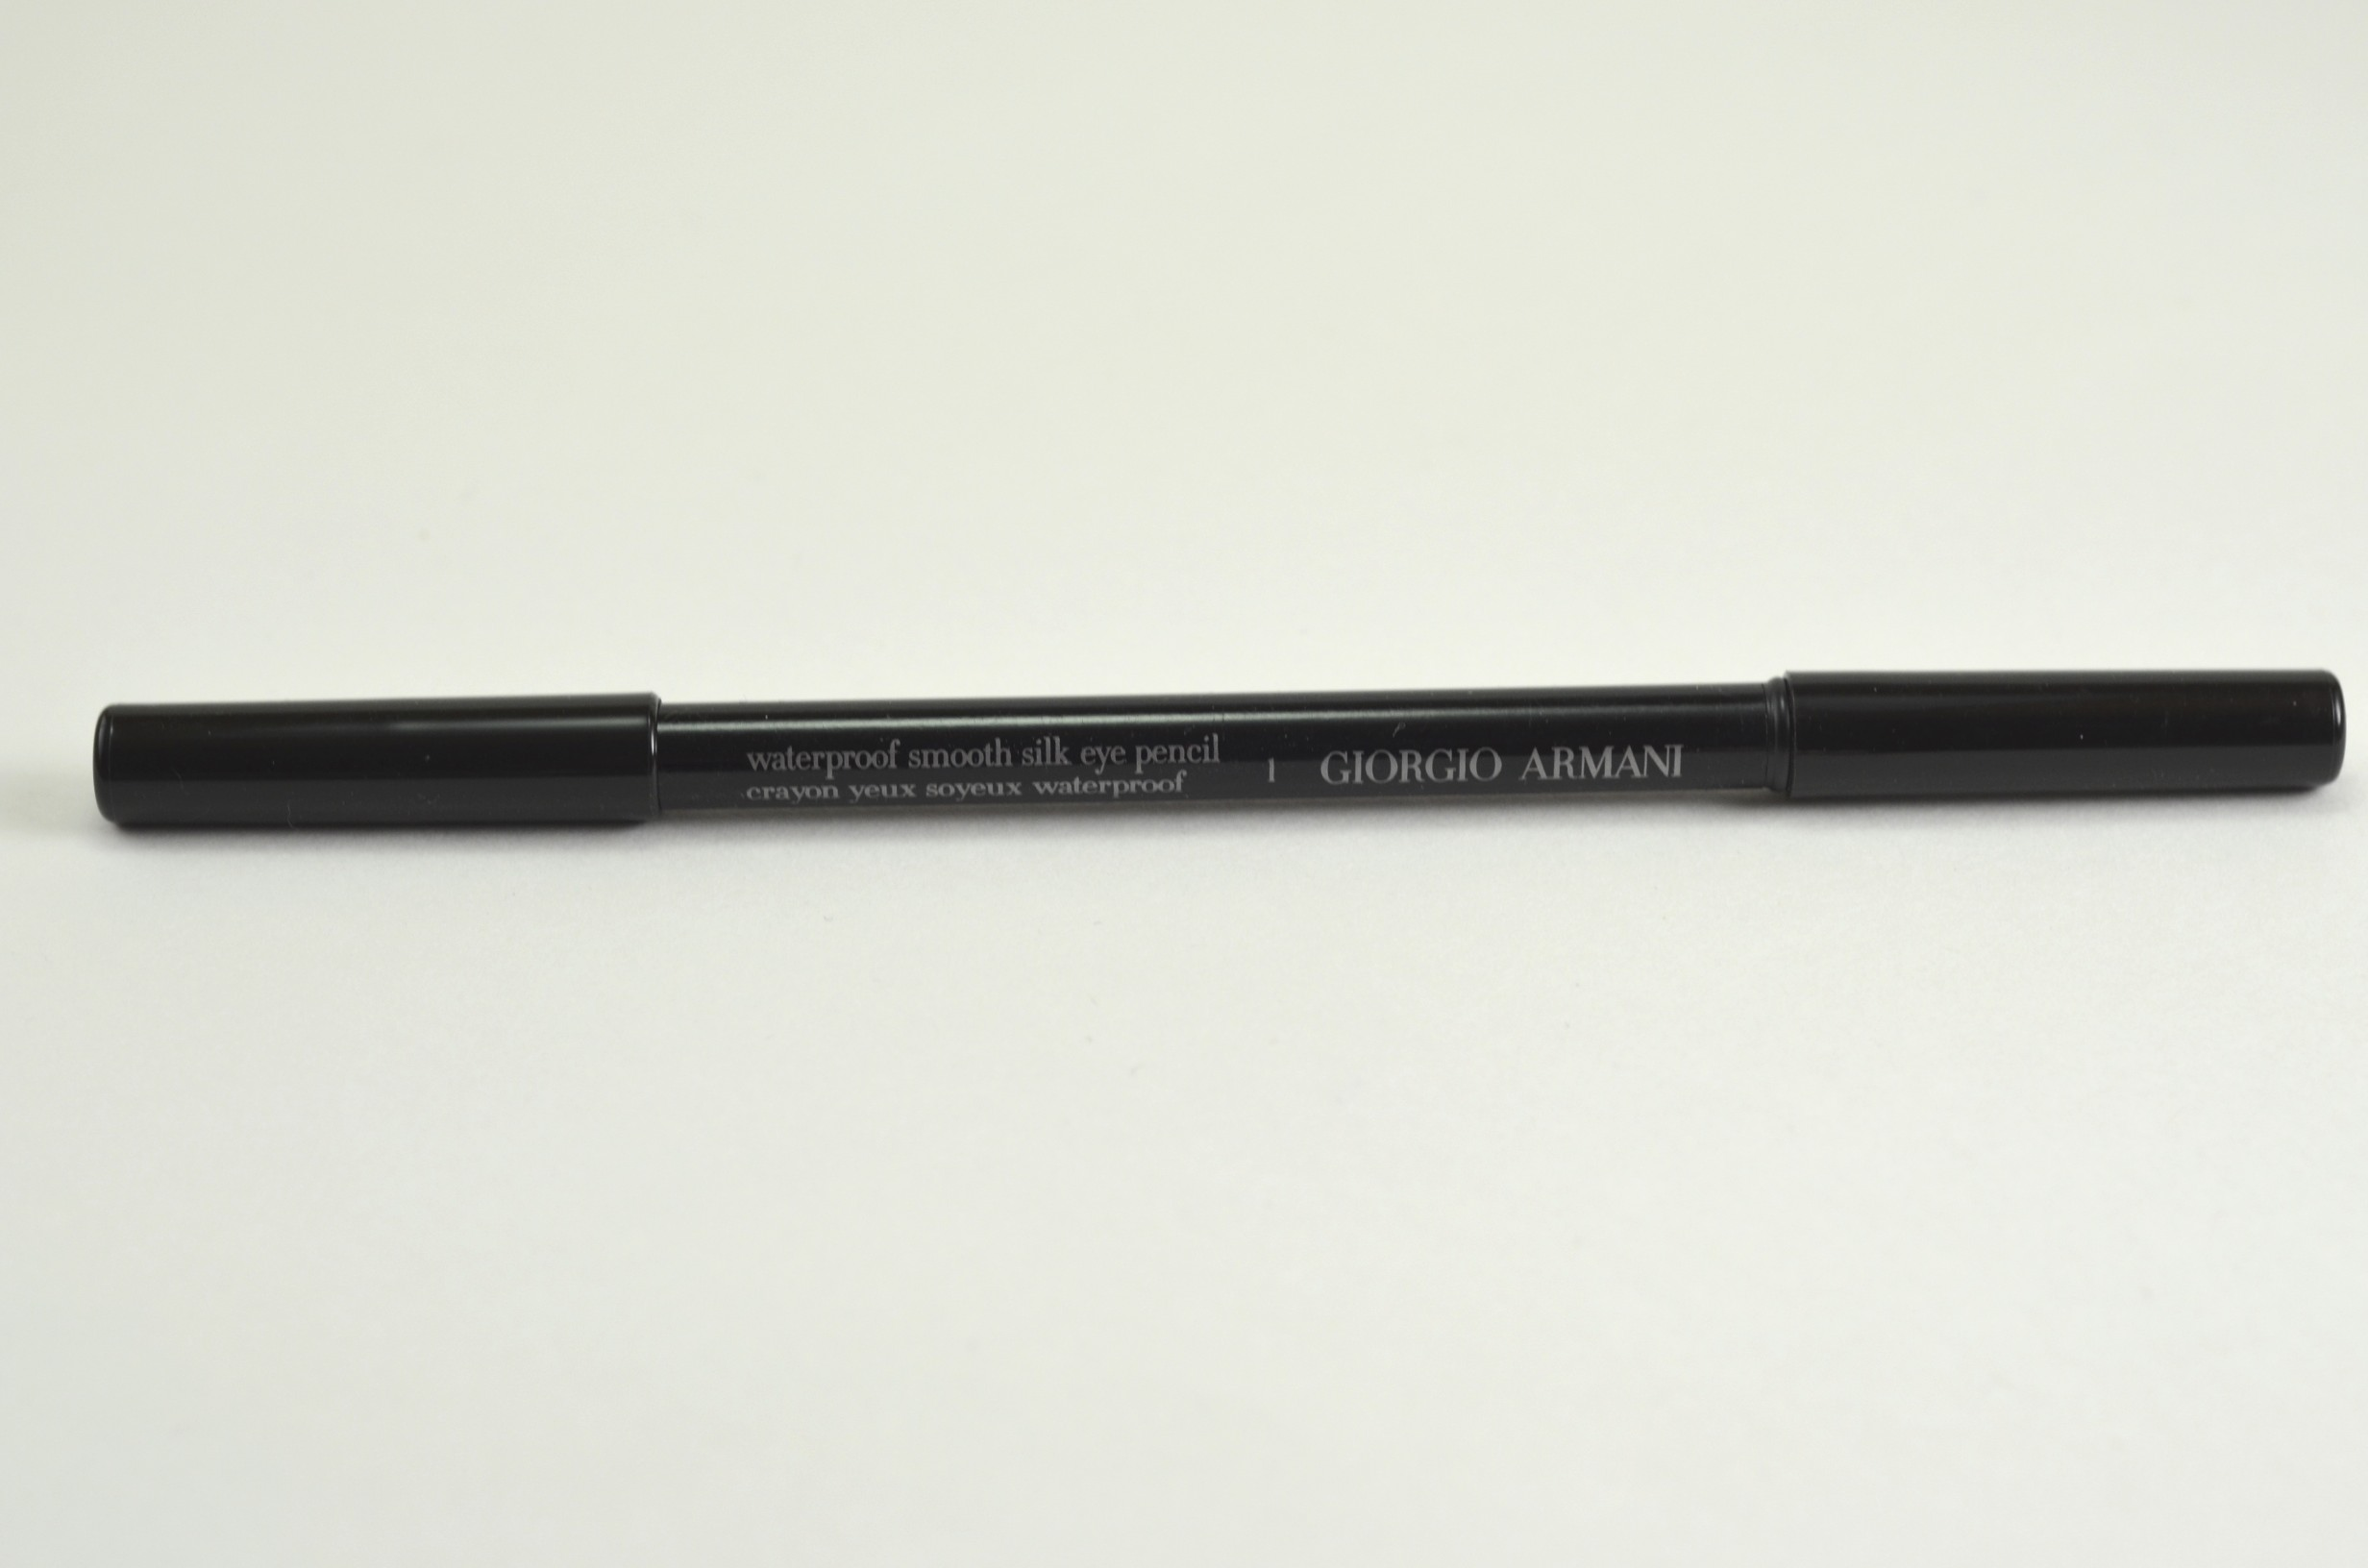 armani eyes to kill waterproof liner review, armani waterproof smooth silk liner review